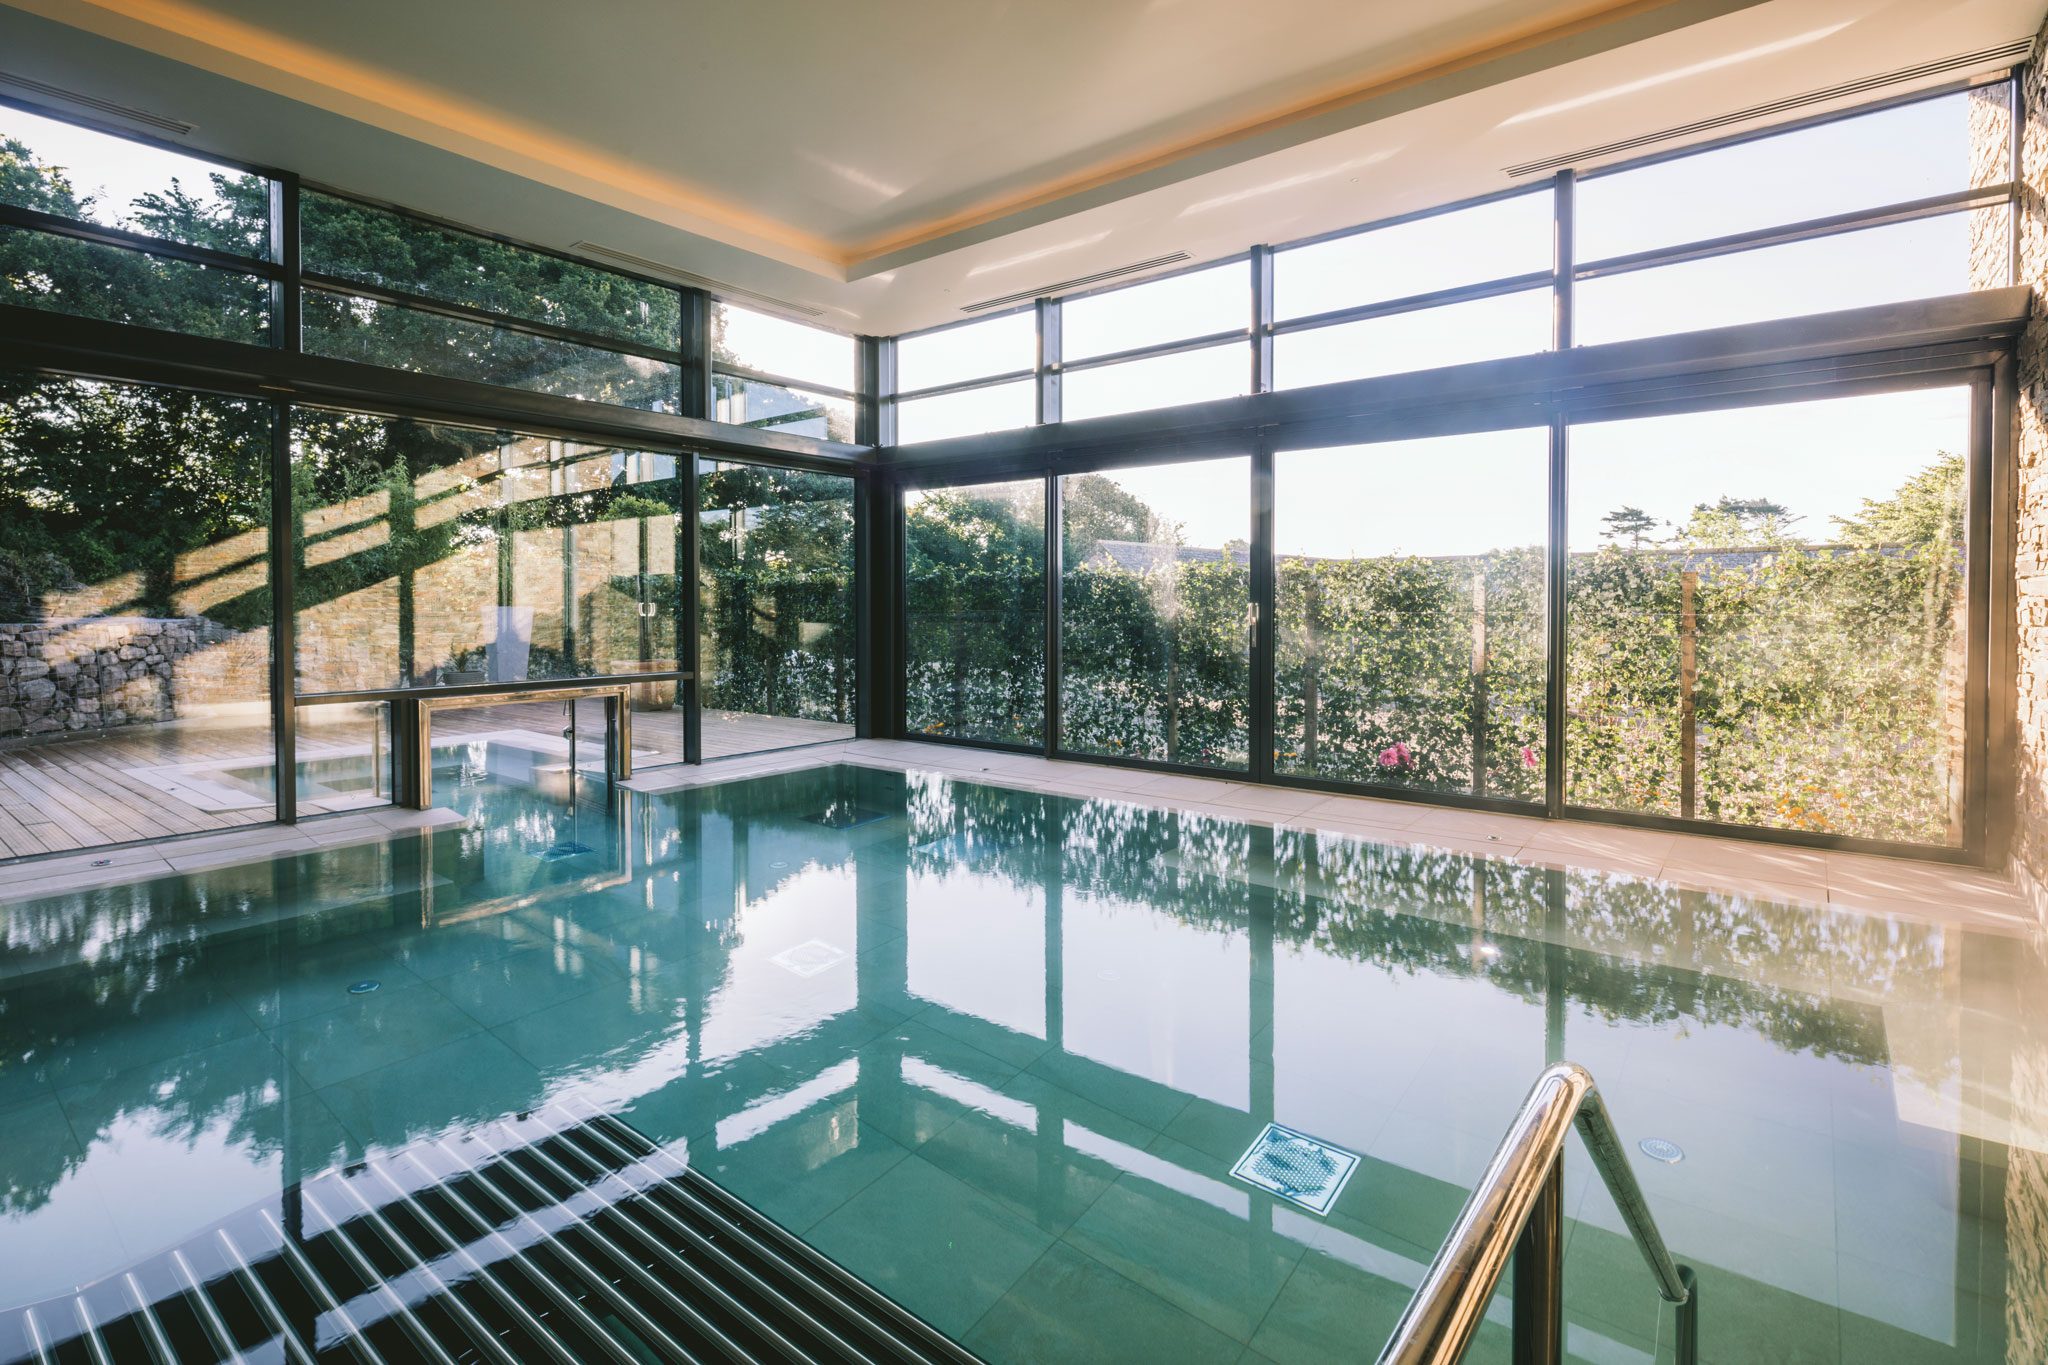 Boringdon hall gaia spa bos leisure bristol hot tubs bristol hot tubs bath swimming pools for Plymouth hotels with swimming pools